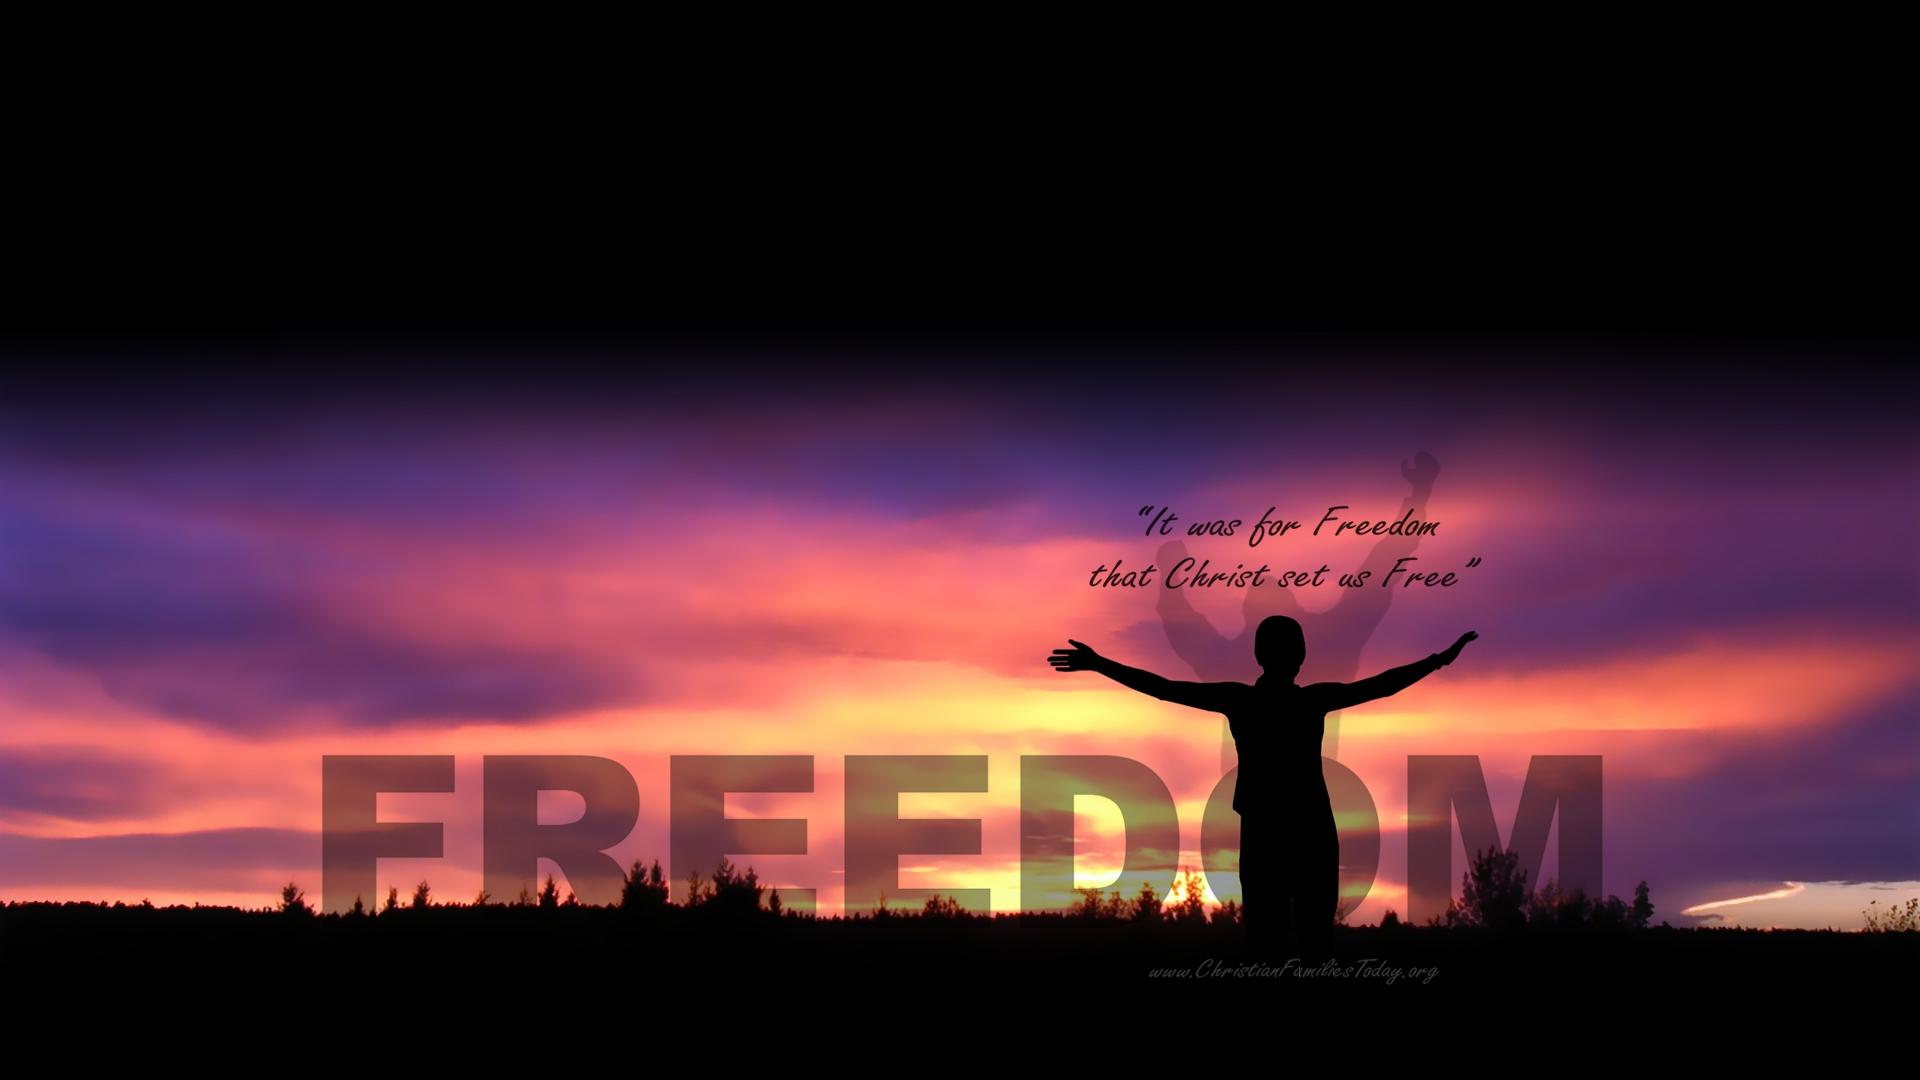 Freedom Wallpaper   Christian Wallpapers and Backgrounds 1920x1080